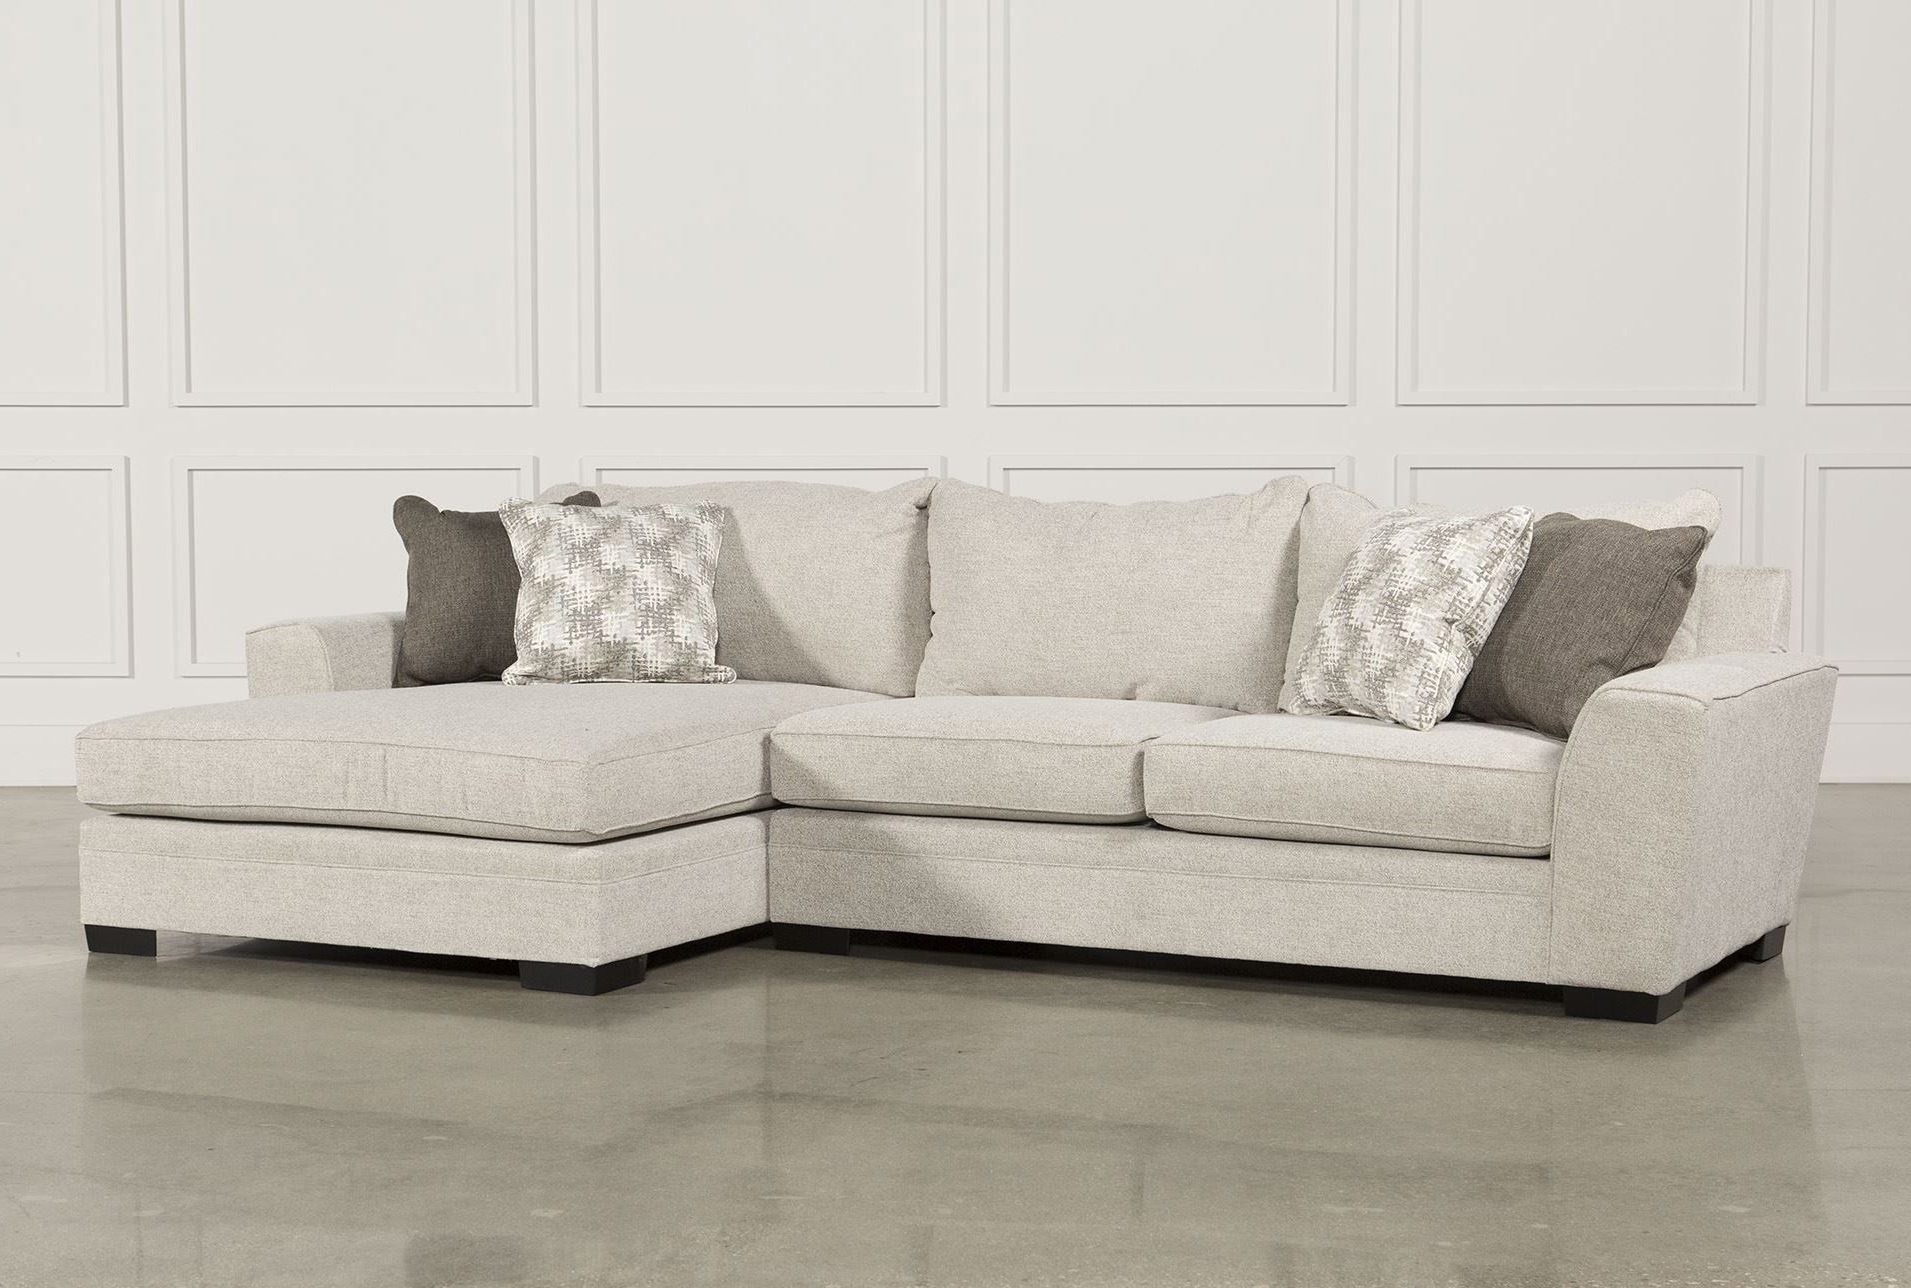 New Home For Latest Delano 2 Piece Sectionals With Laf Oversized Chaise (View 3 of 20)